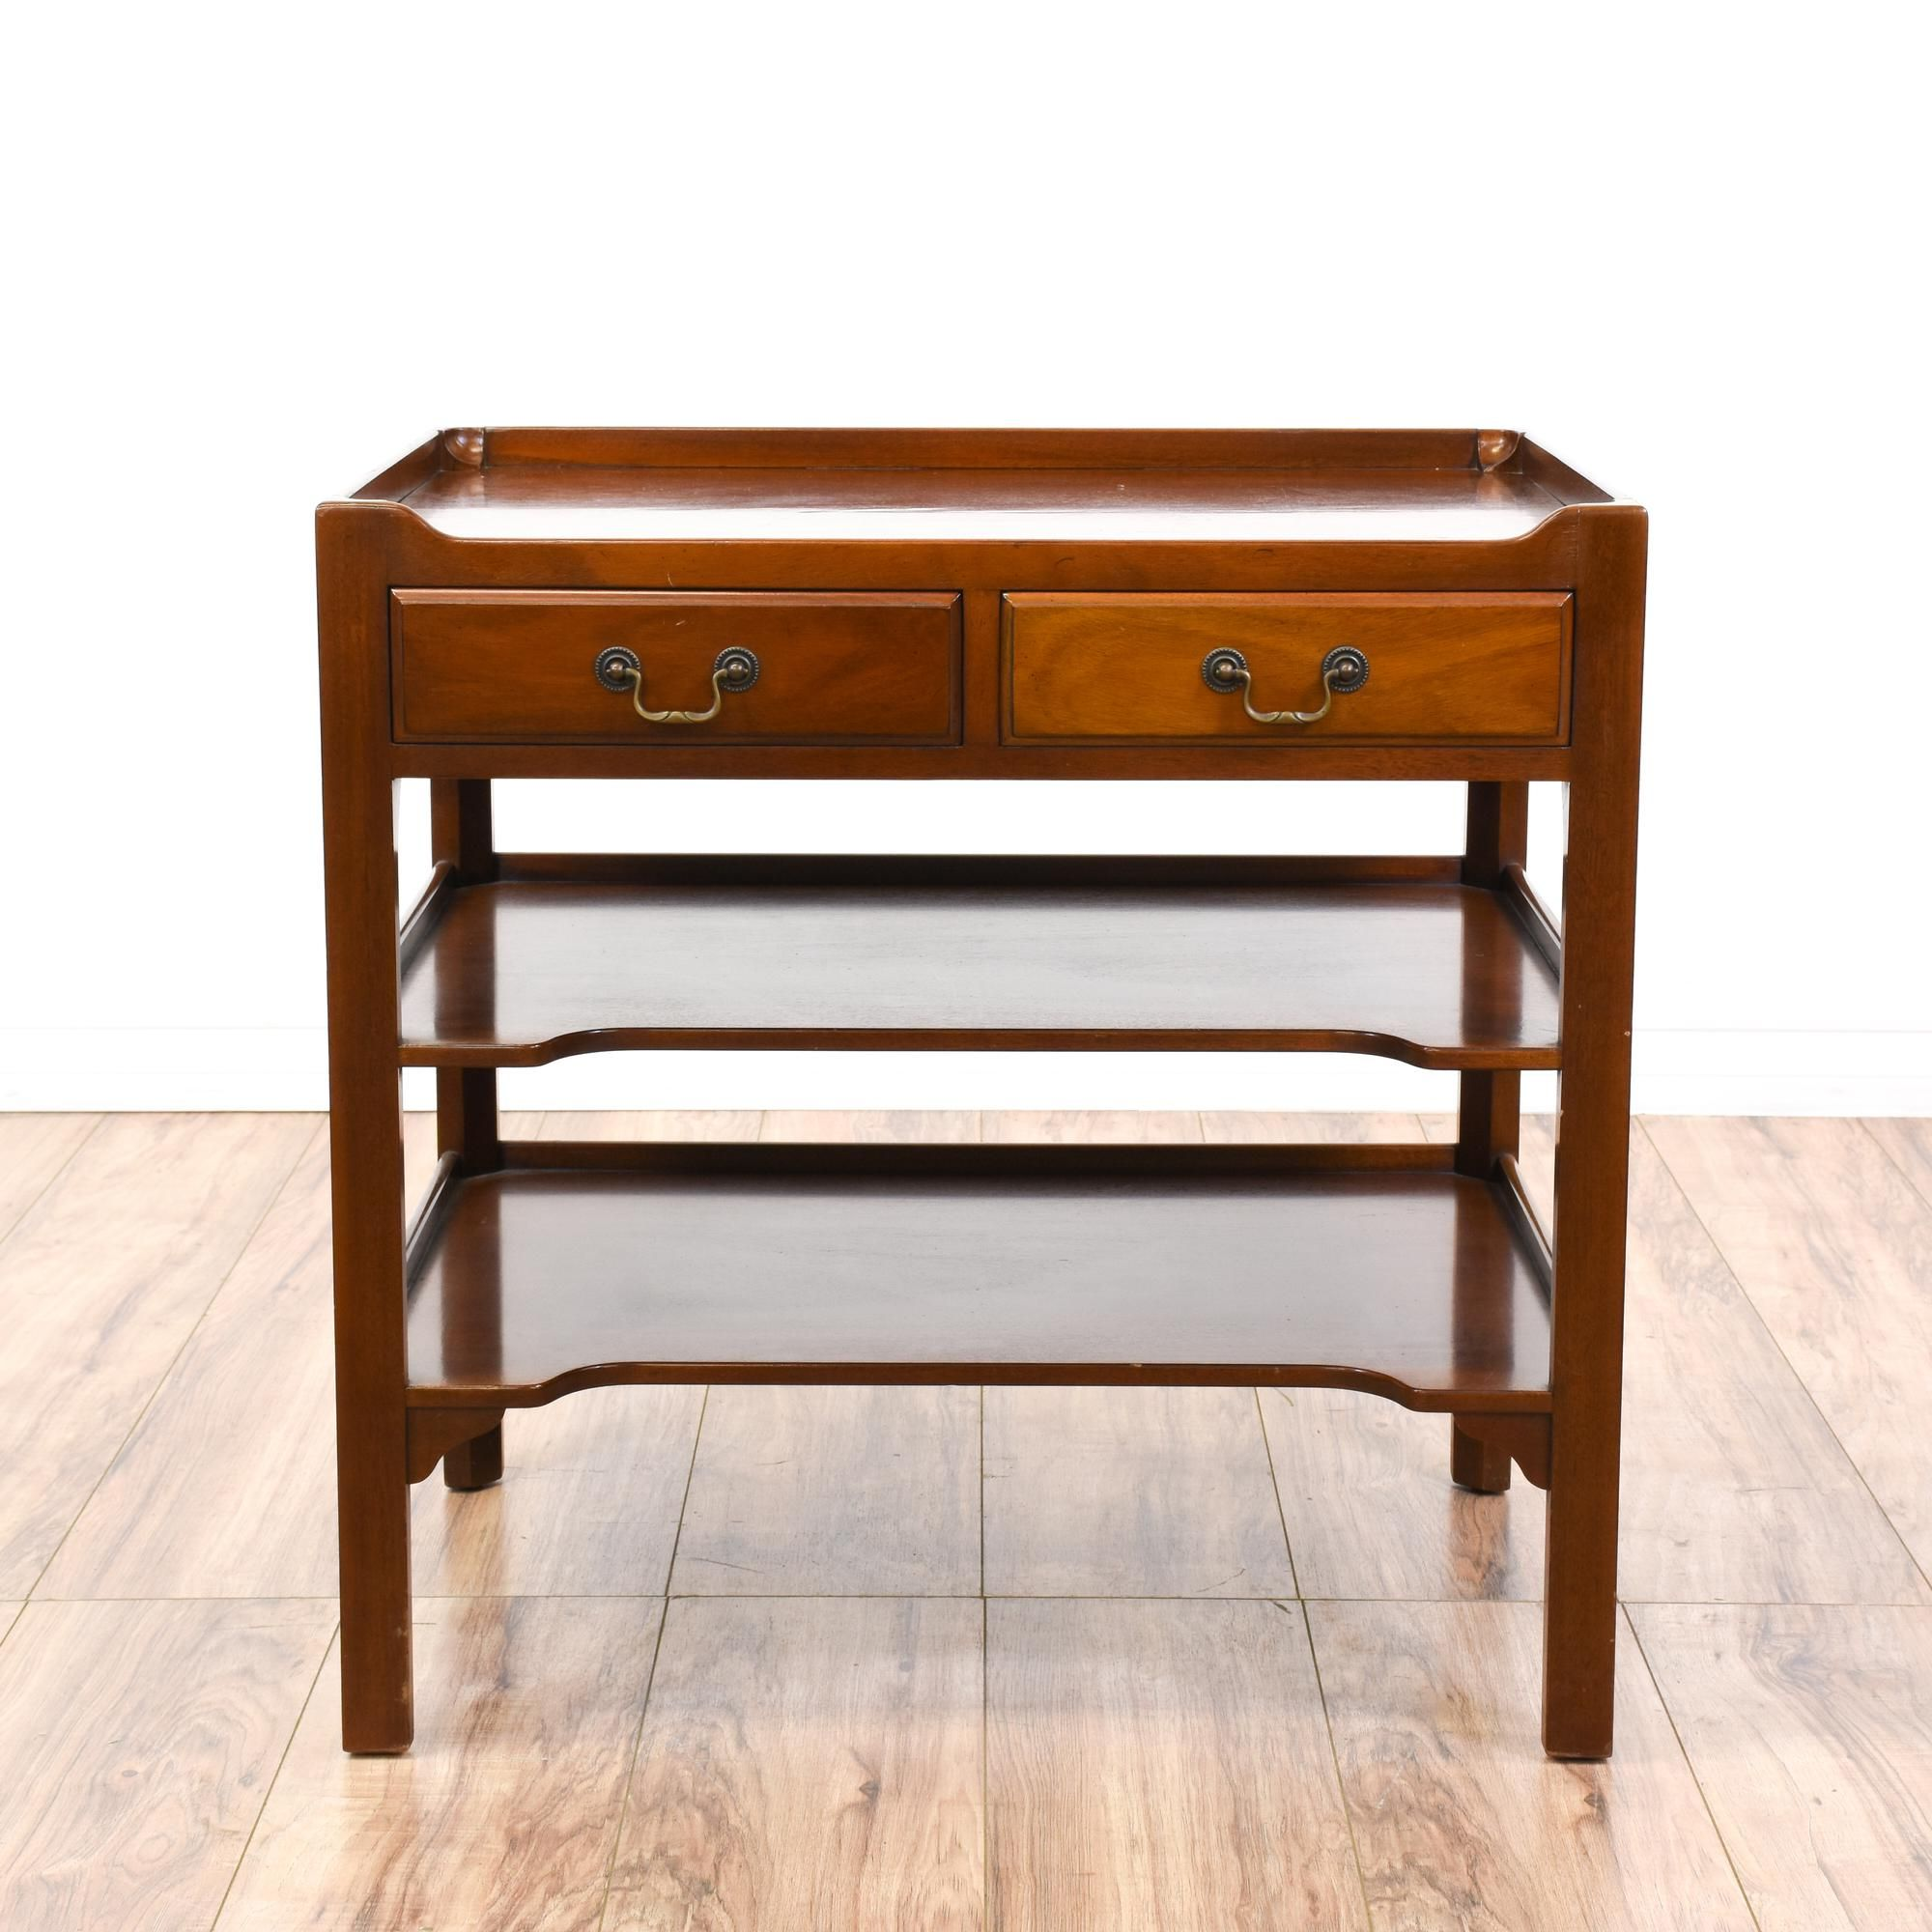 This Asian style side table is featured in a solid wood with a